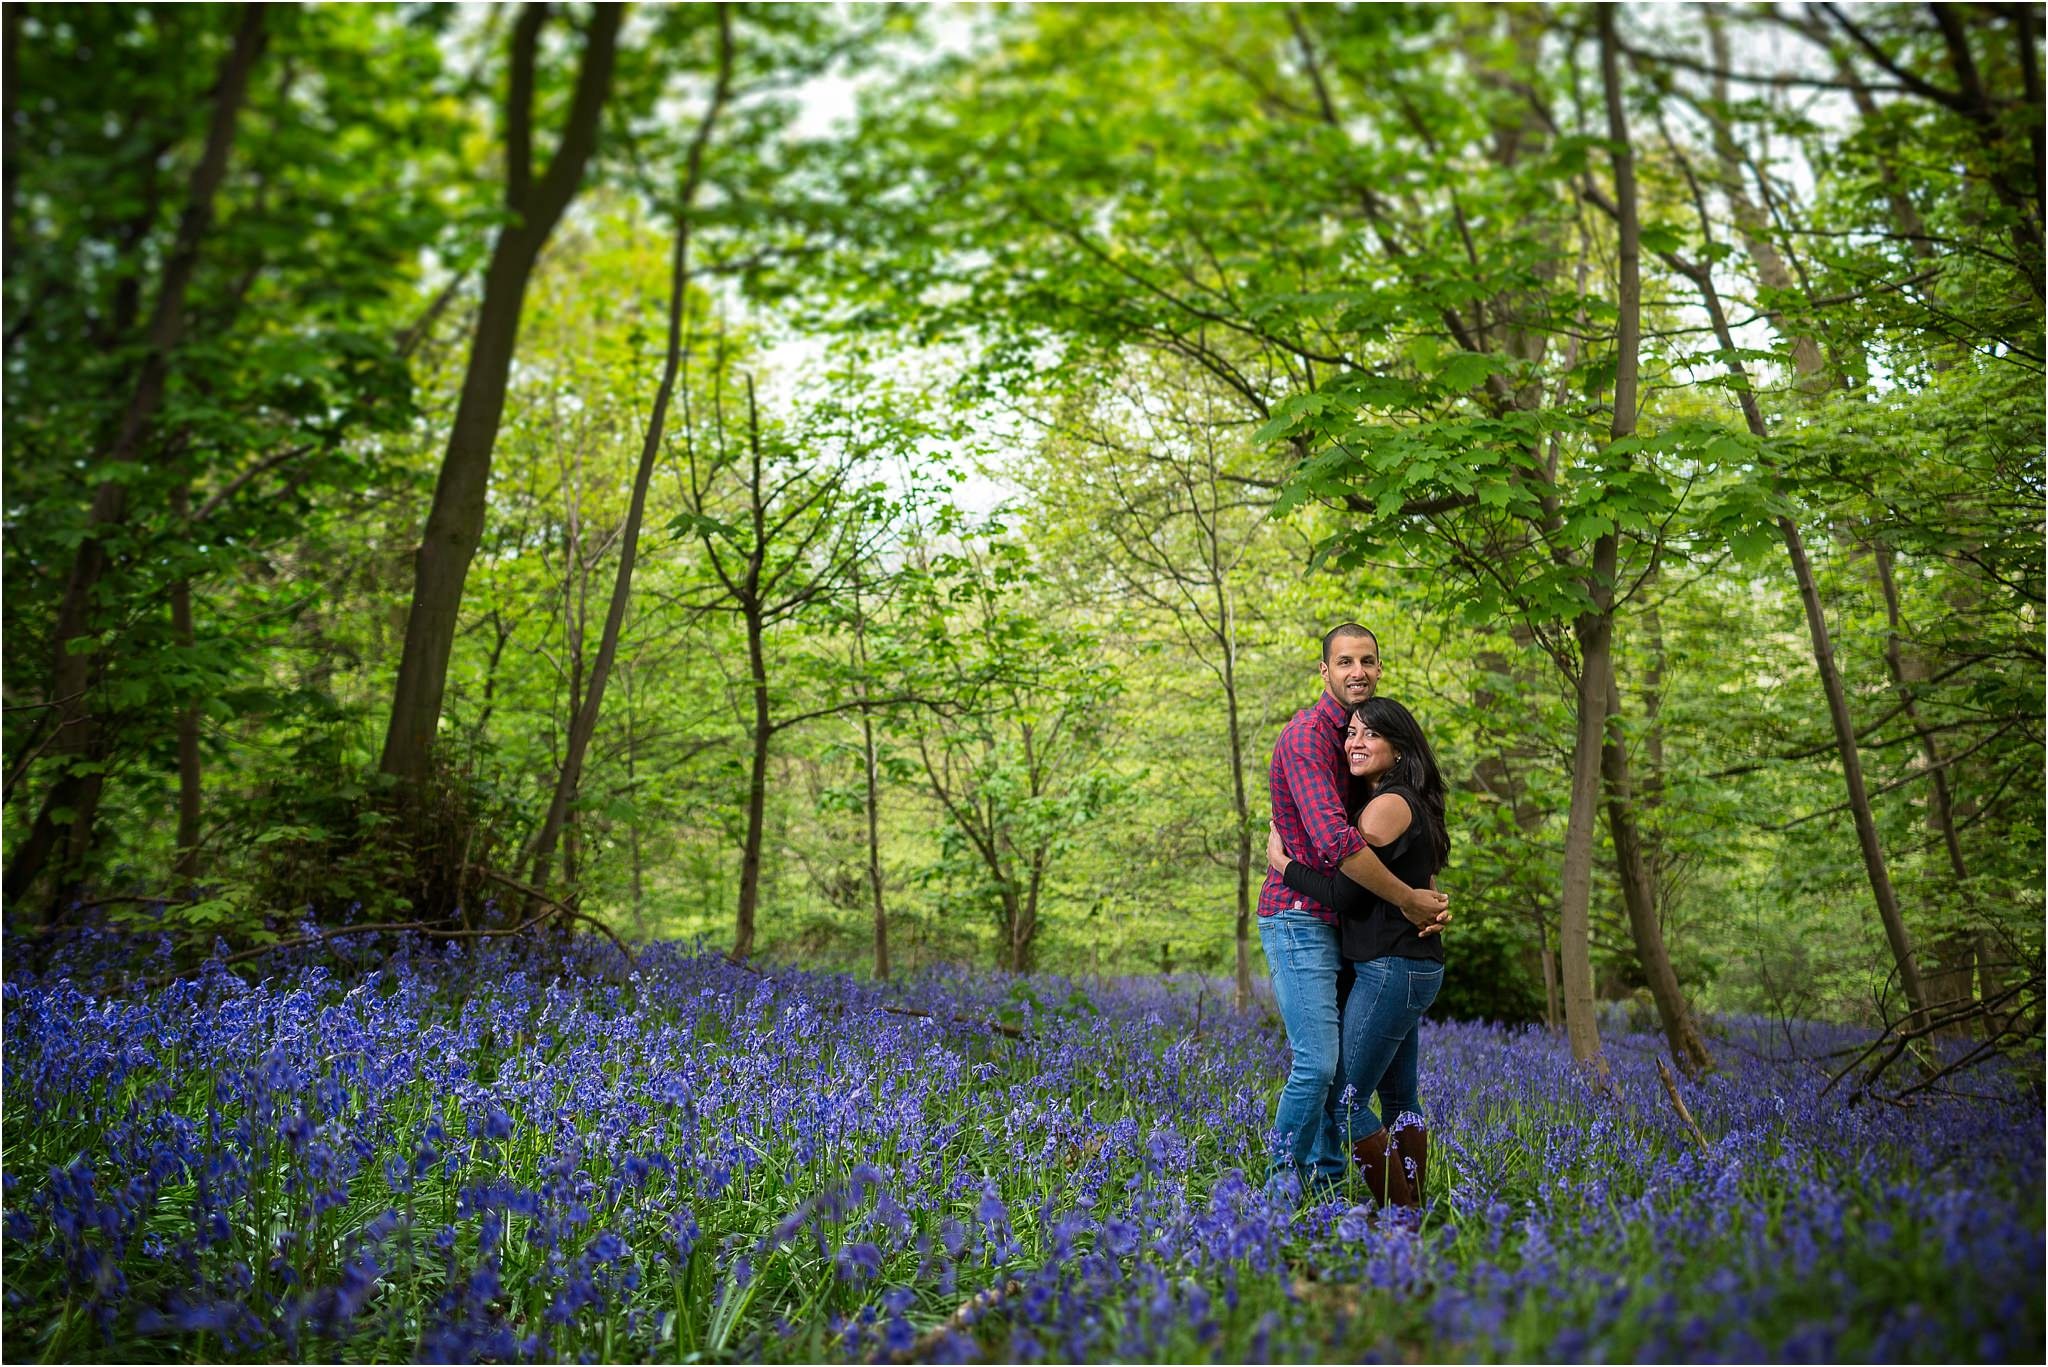 A couple during their pre wedding shoot amongst a mass of bluebells.